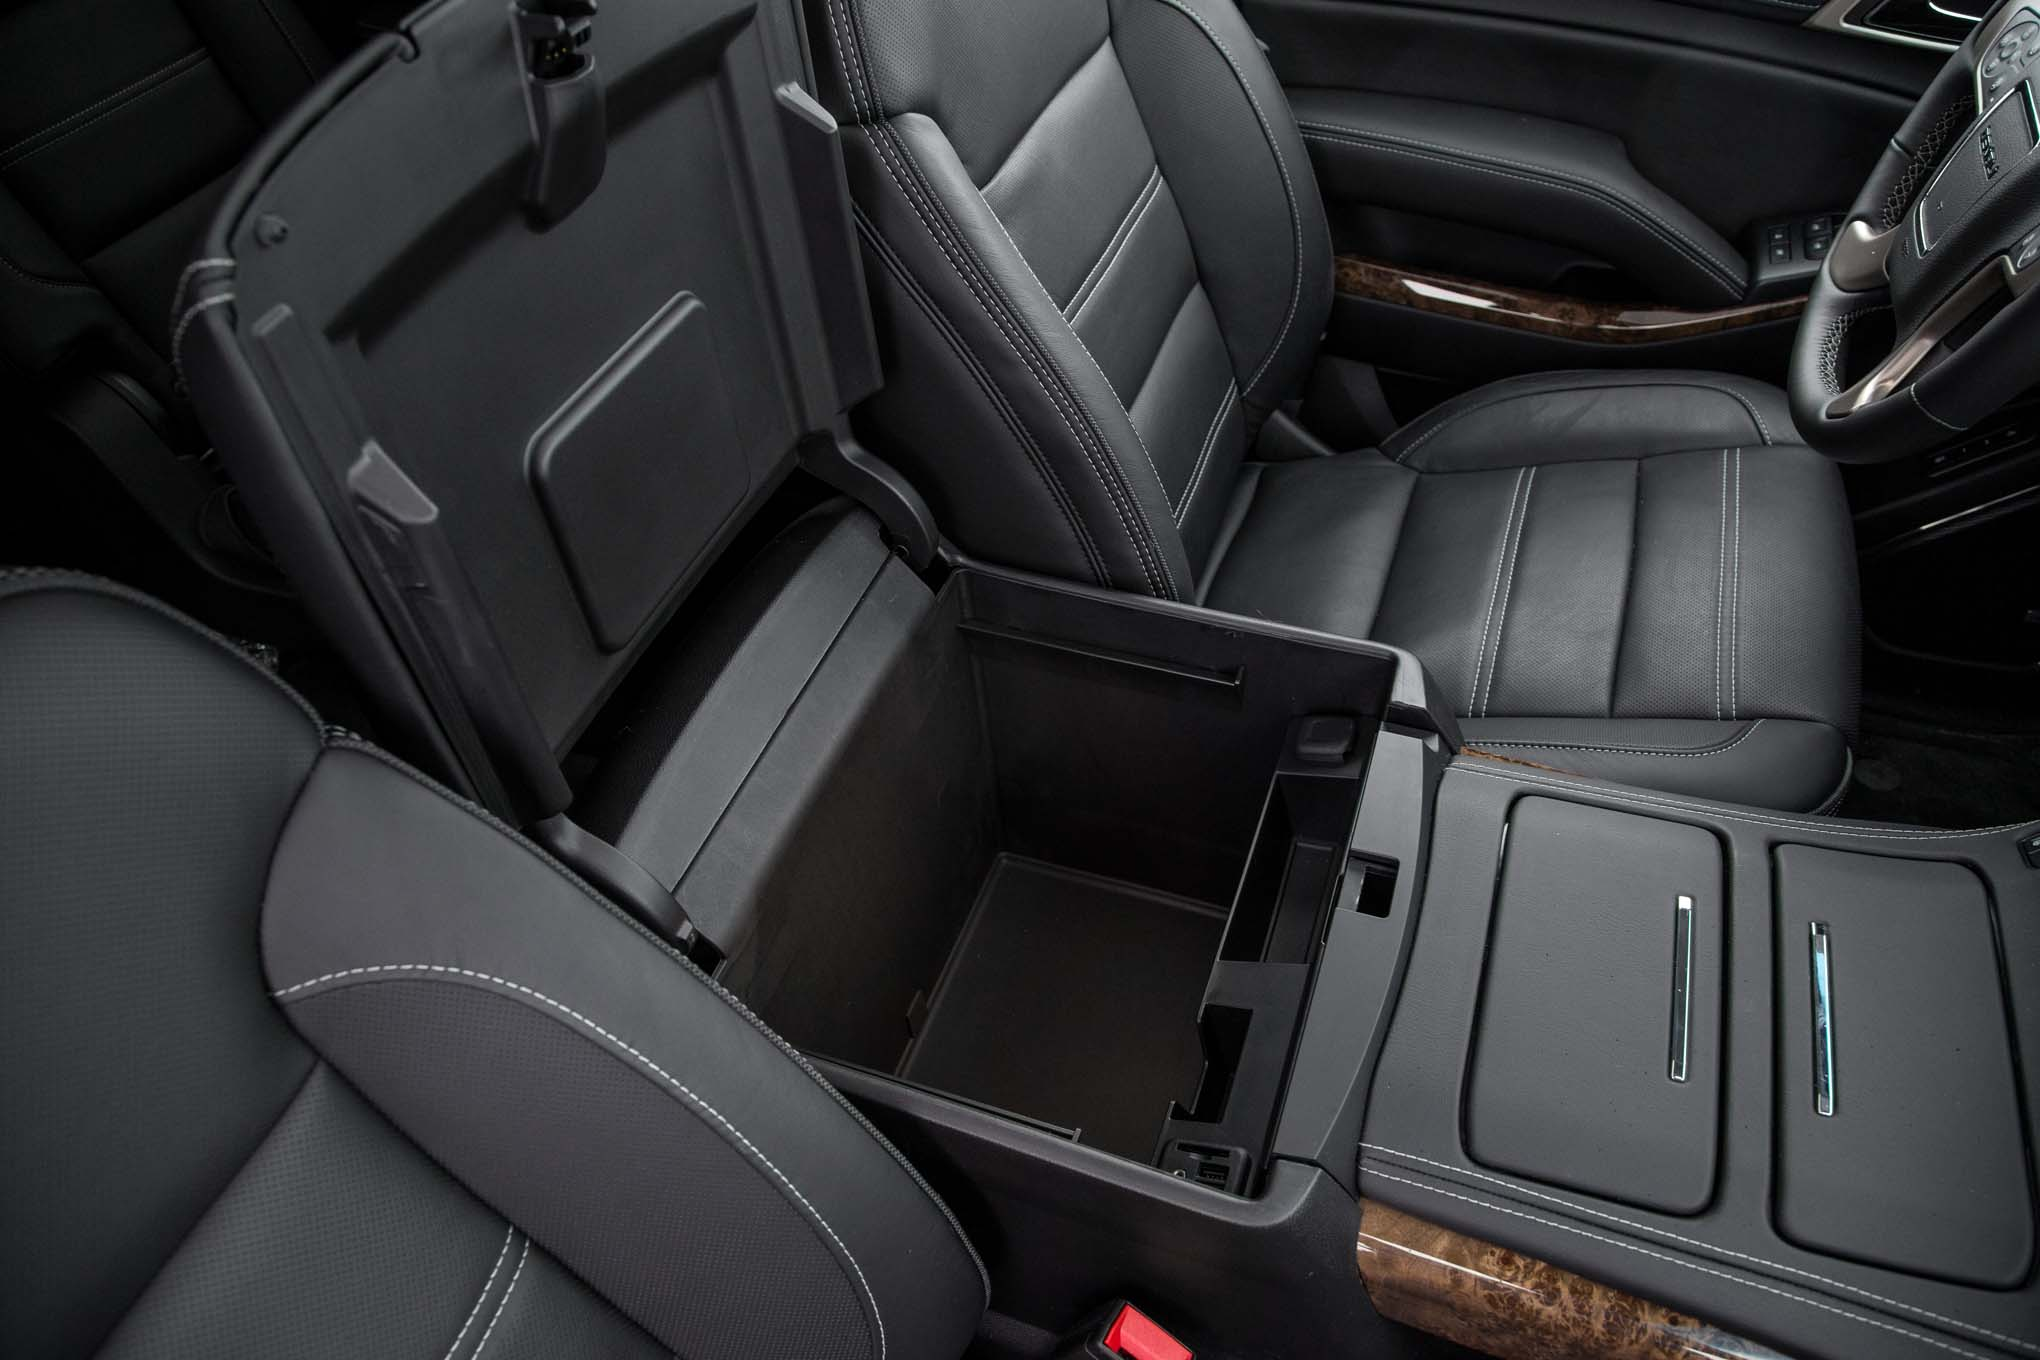 2017 Gmc Yukon Xl Center Console